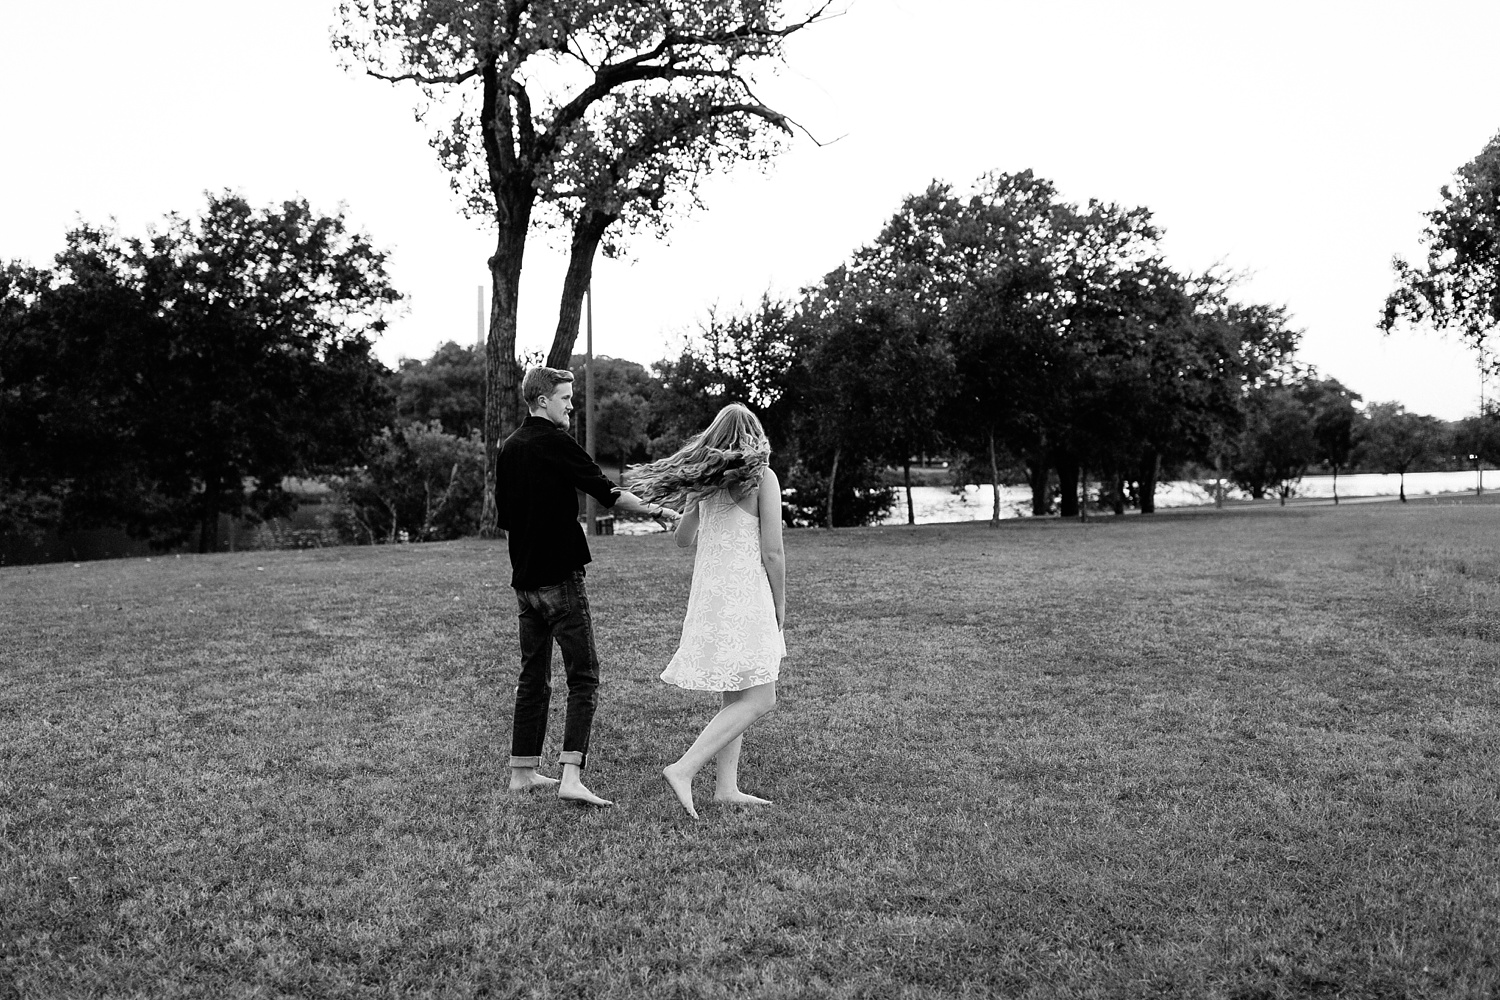 Kayla + Alex _ a joyful and loving engagement shoot in Waco, Texas by North Texas Wedding Photographer Rachel Meagan Photography _48